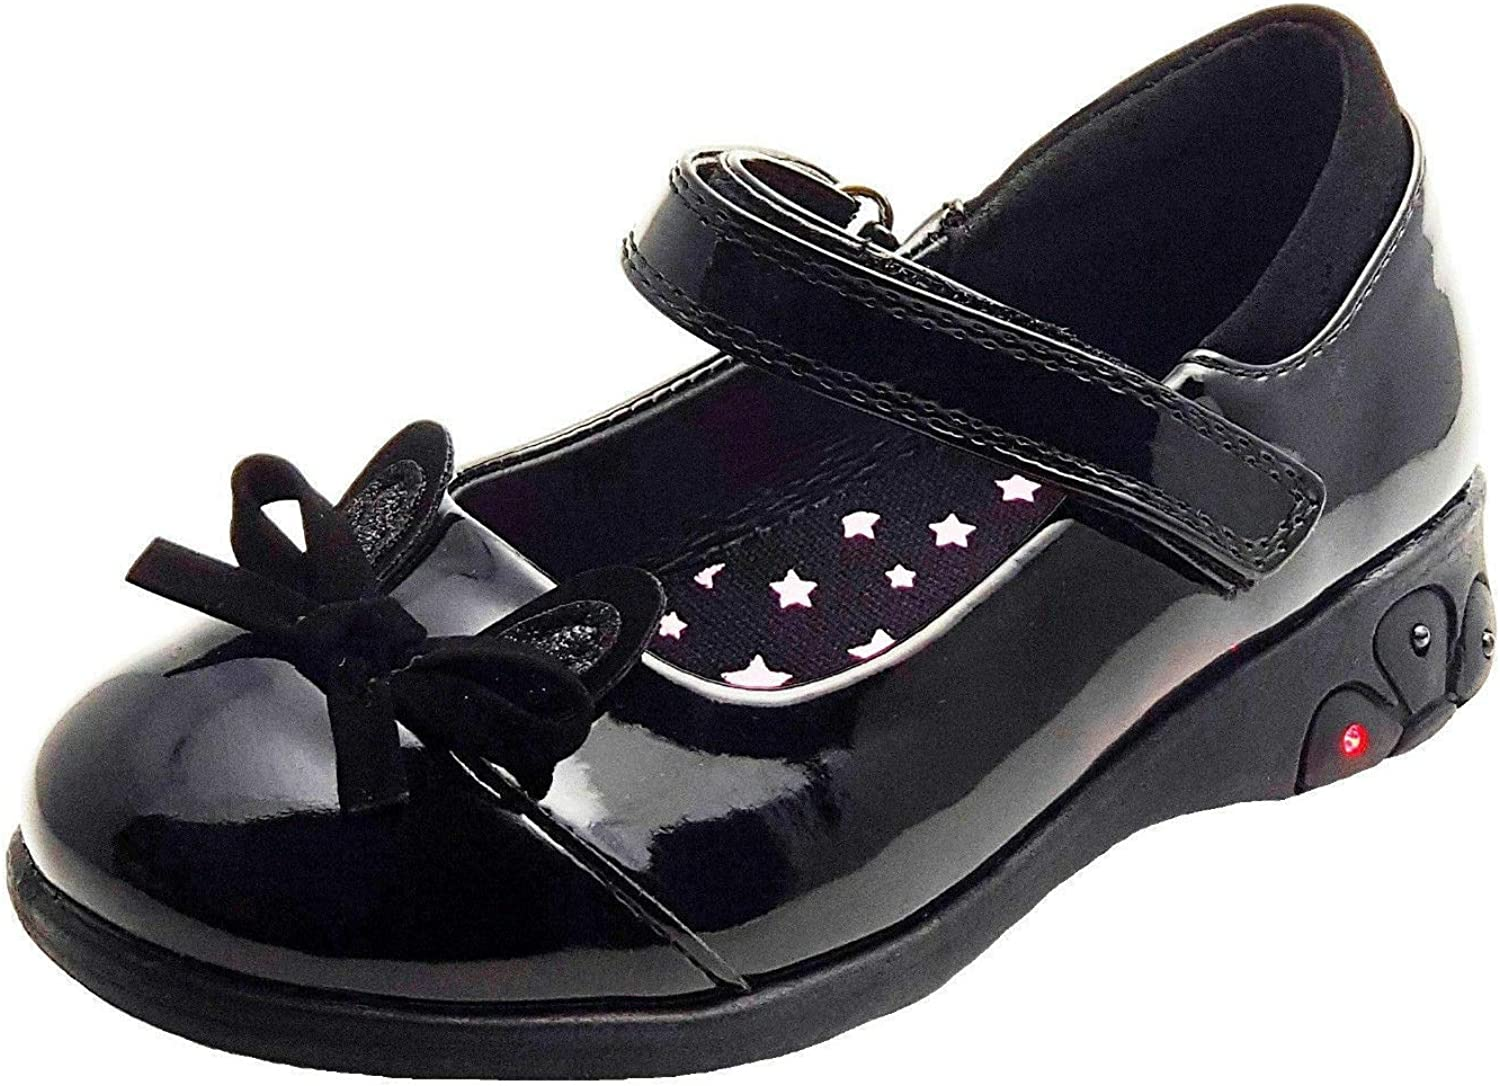 Chatterbox Girls Black Patent Shoes with Light up Heels